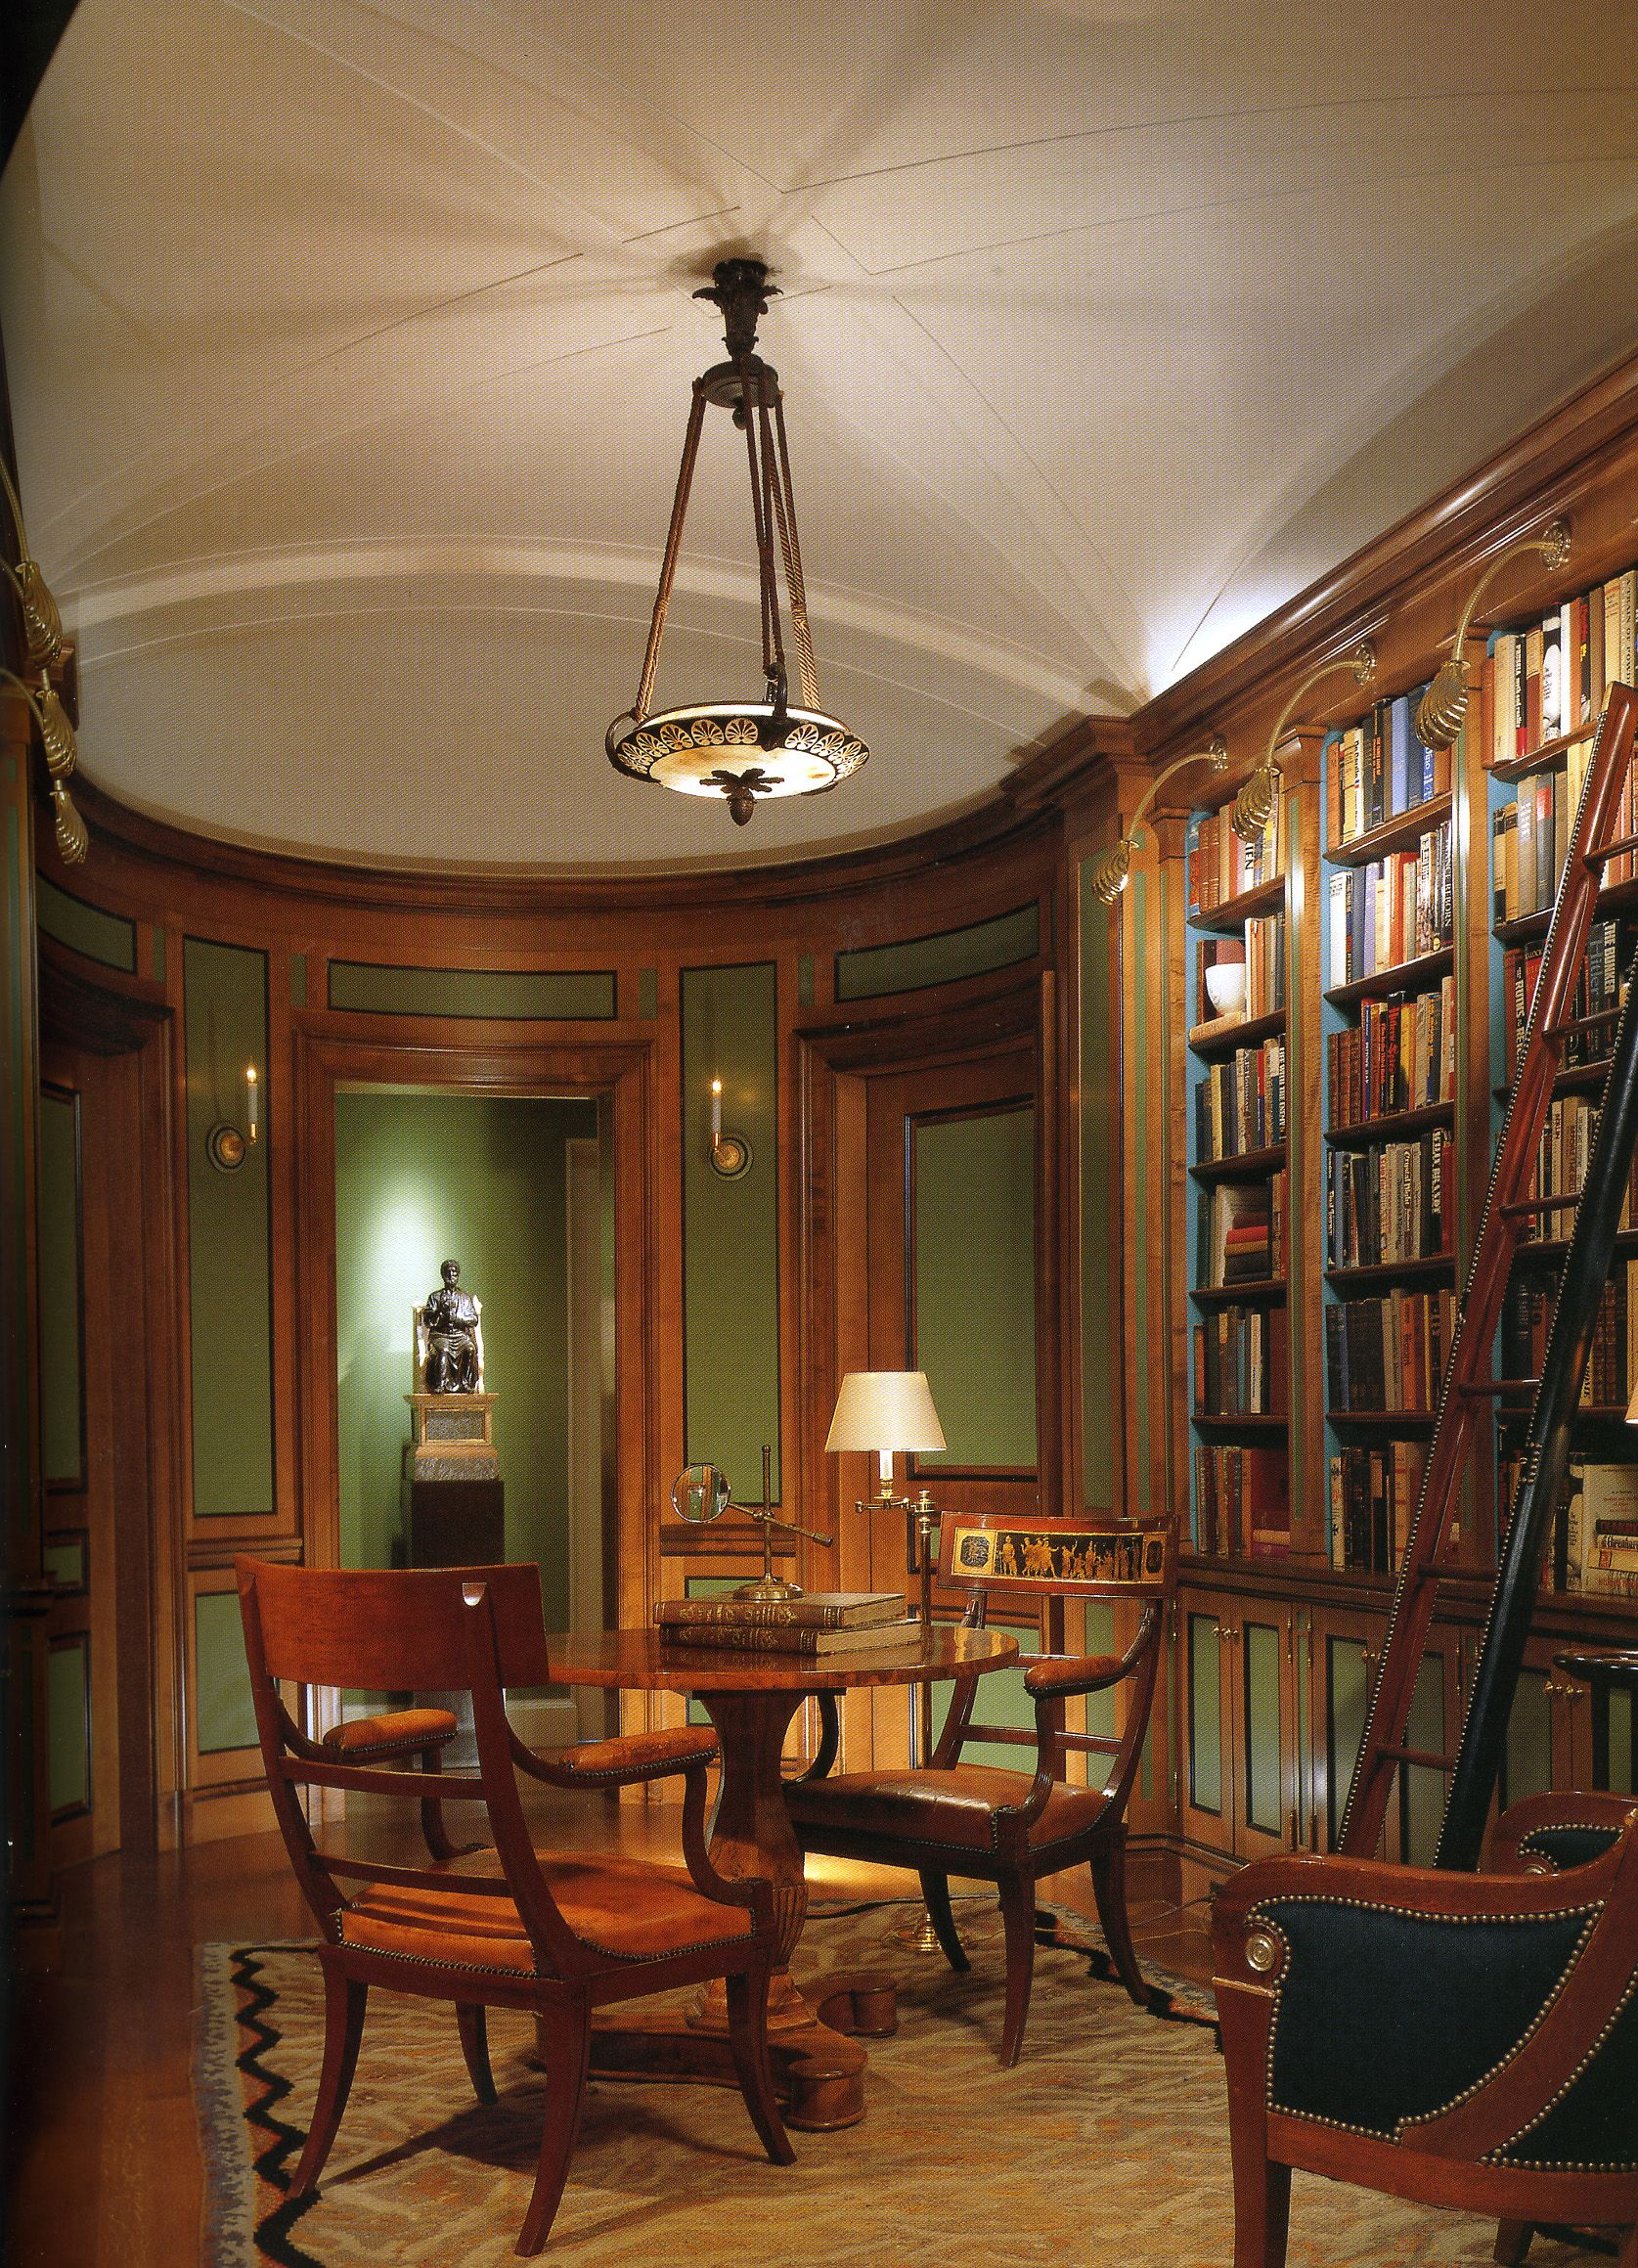 Luxury Home Library Design: Pin By Maggie Baratz On Mystic Library (With Images